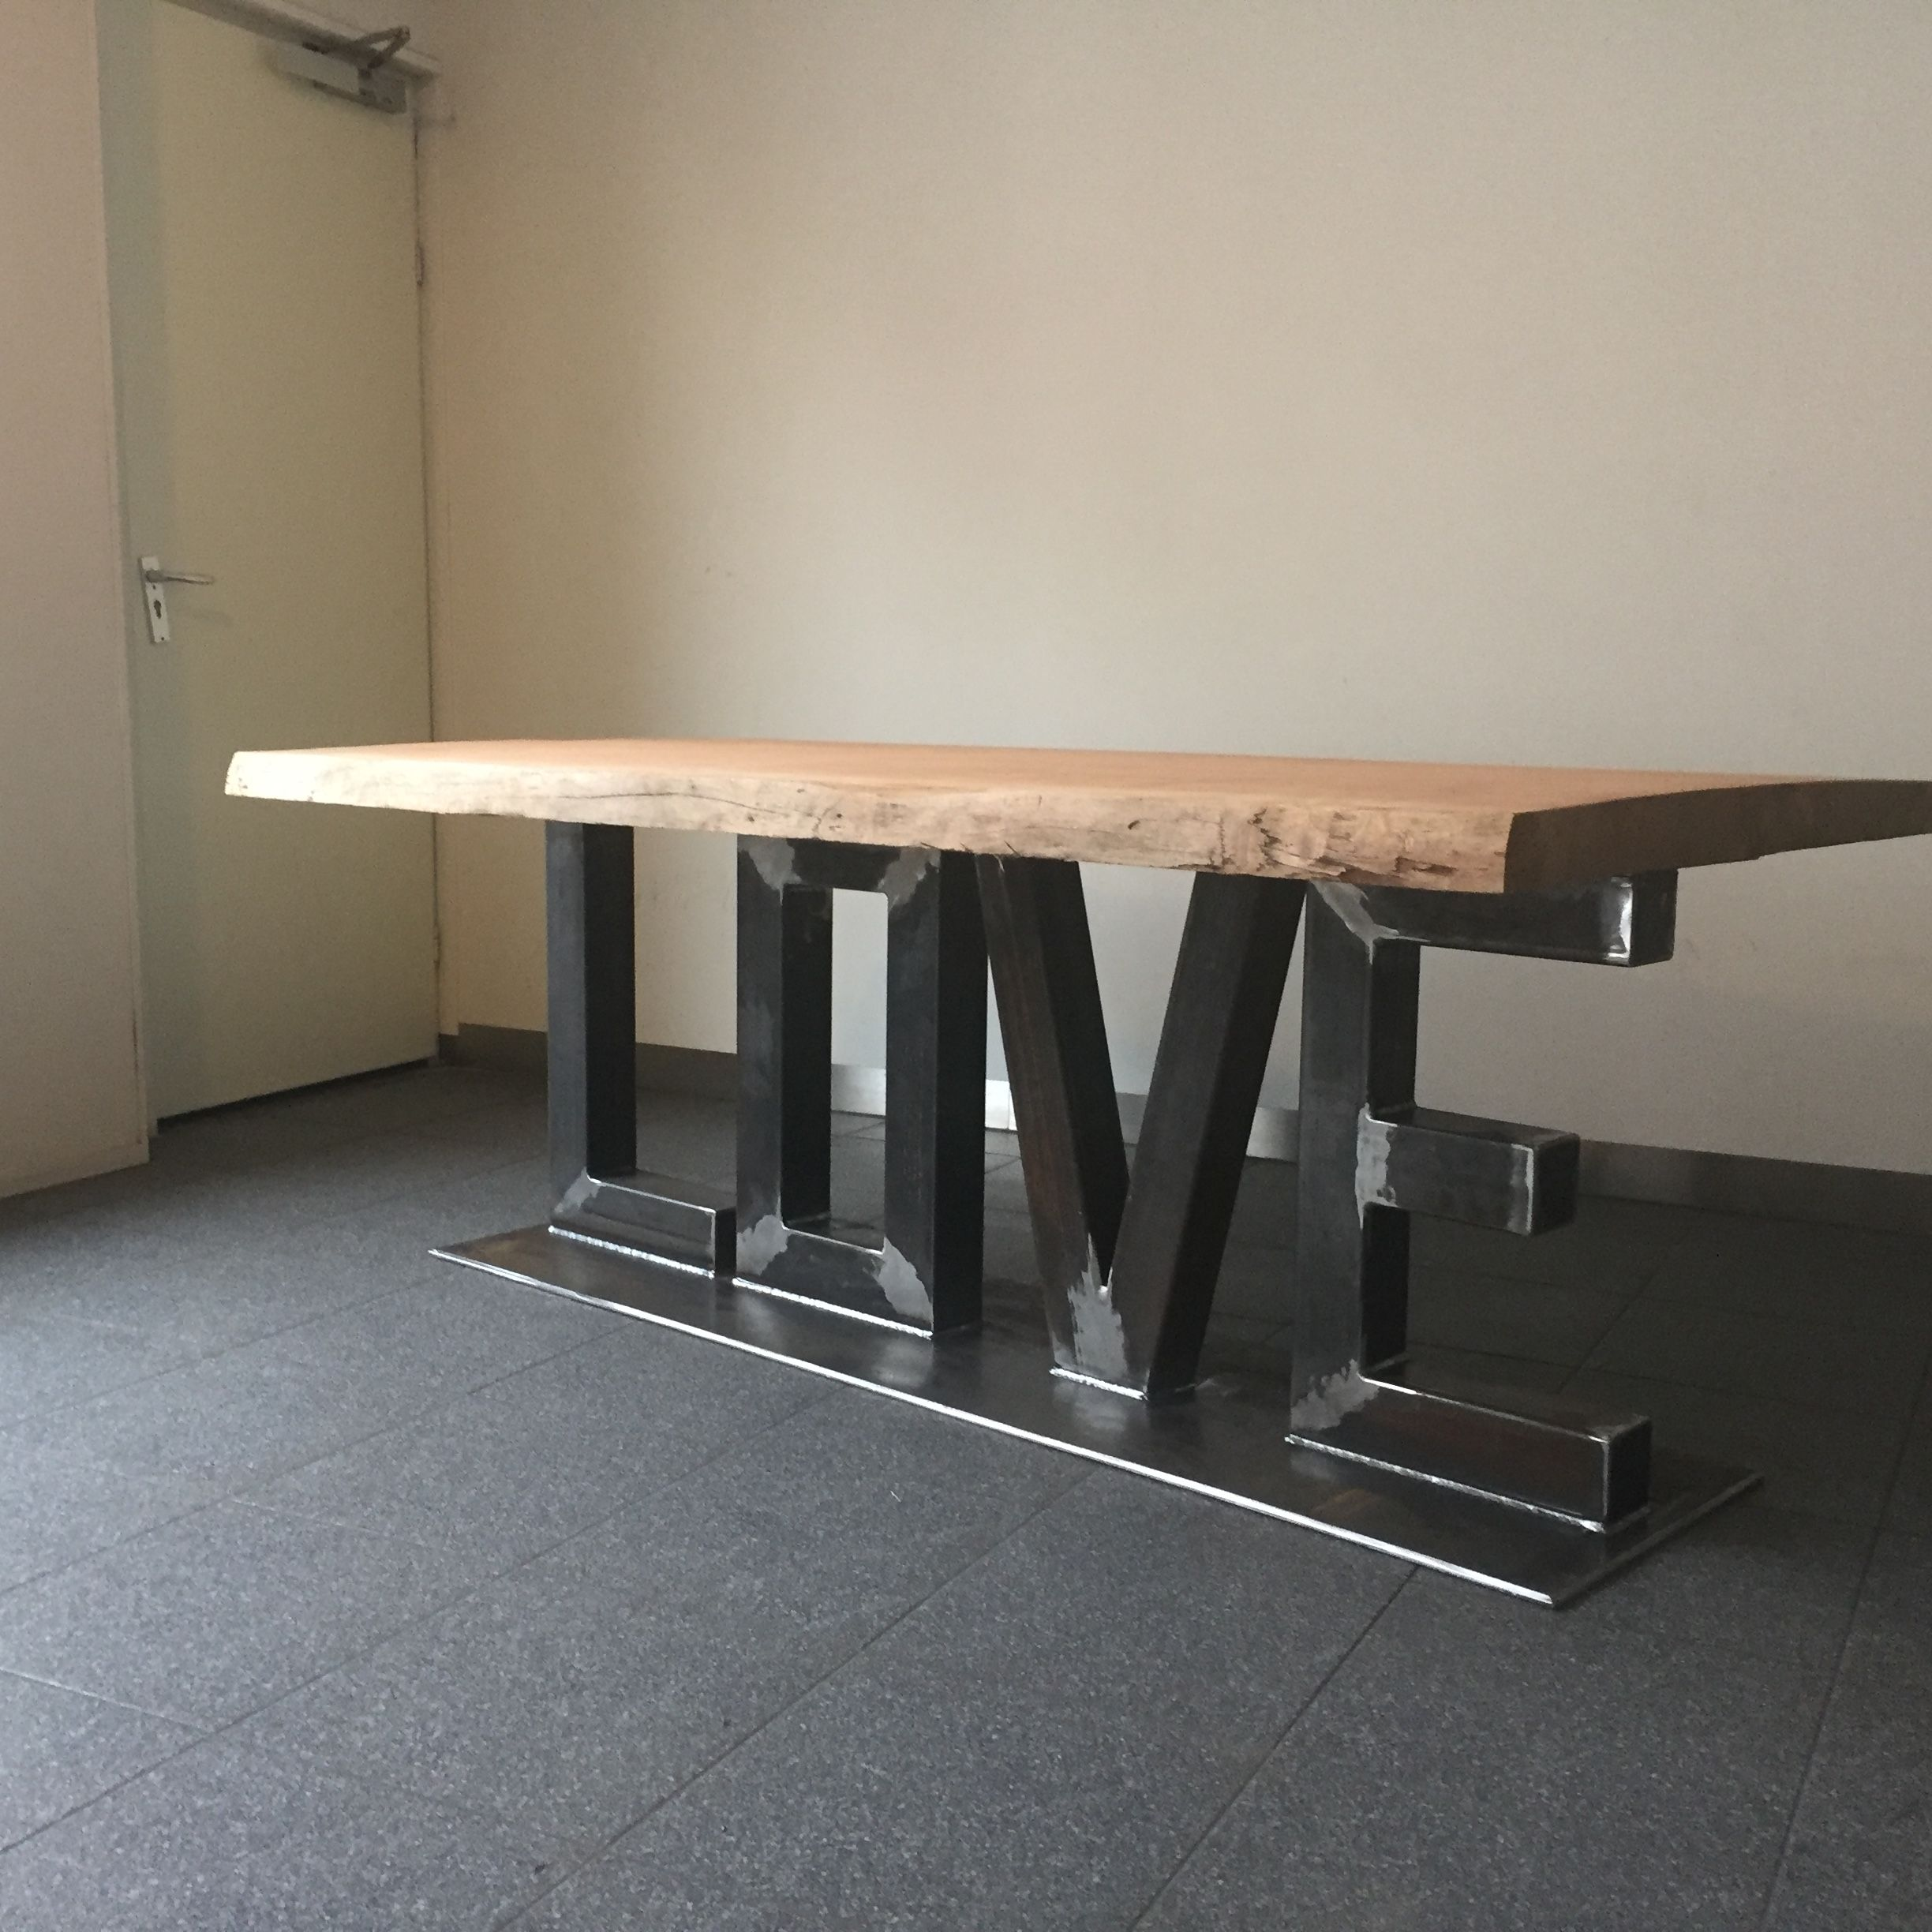 Table Bois Metal Design: Table Bois Mètal Design Industriel Sur Mesure Mobilier